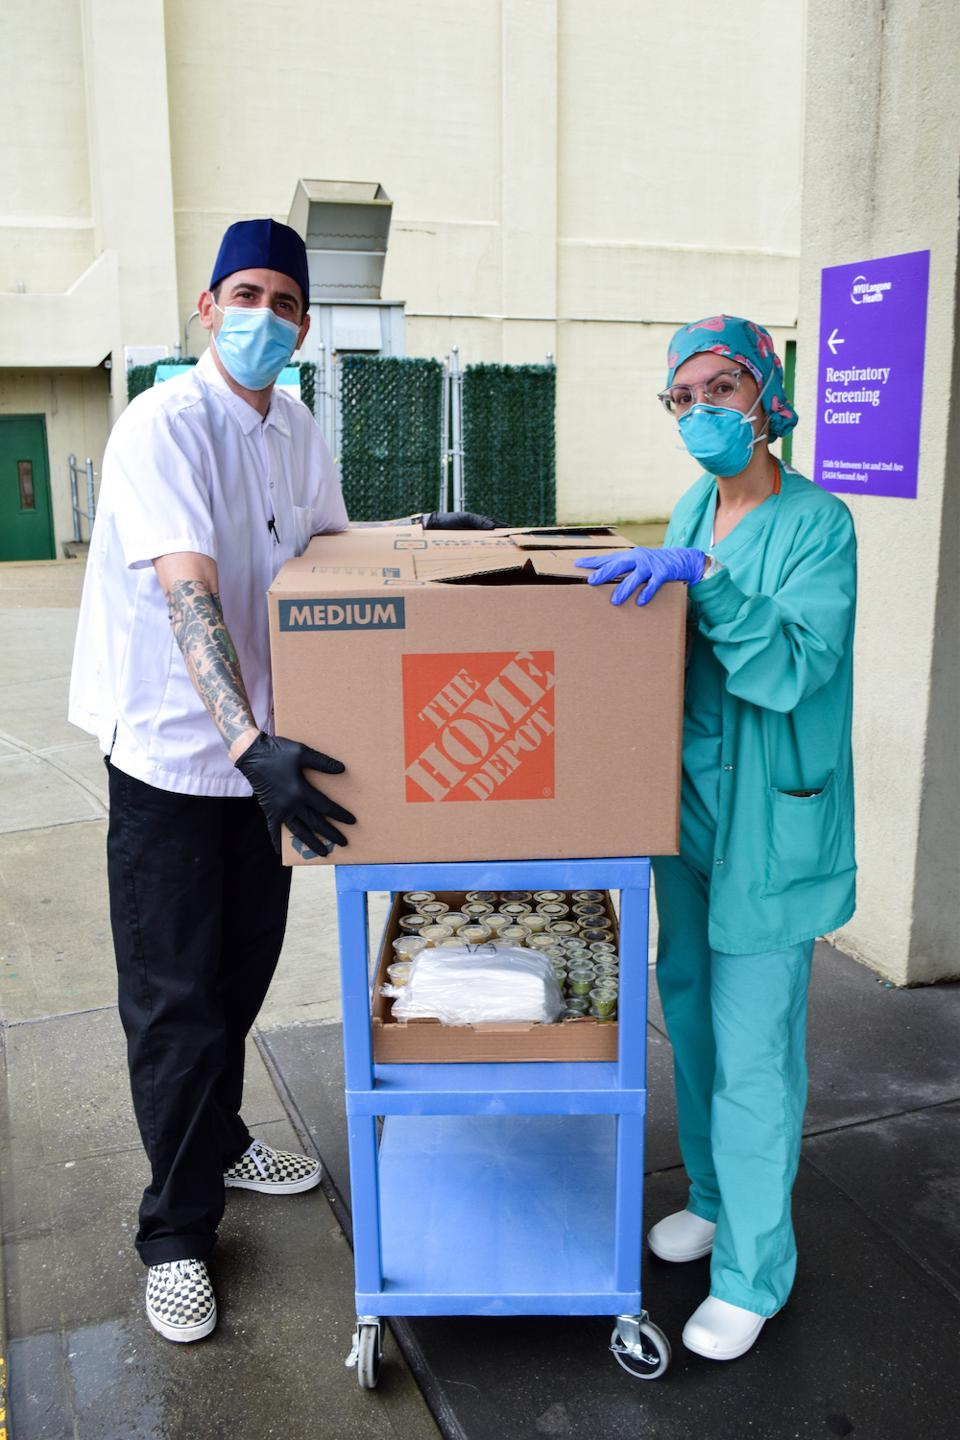 A delivery of sushi boxes for NYC hospital workers.